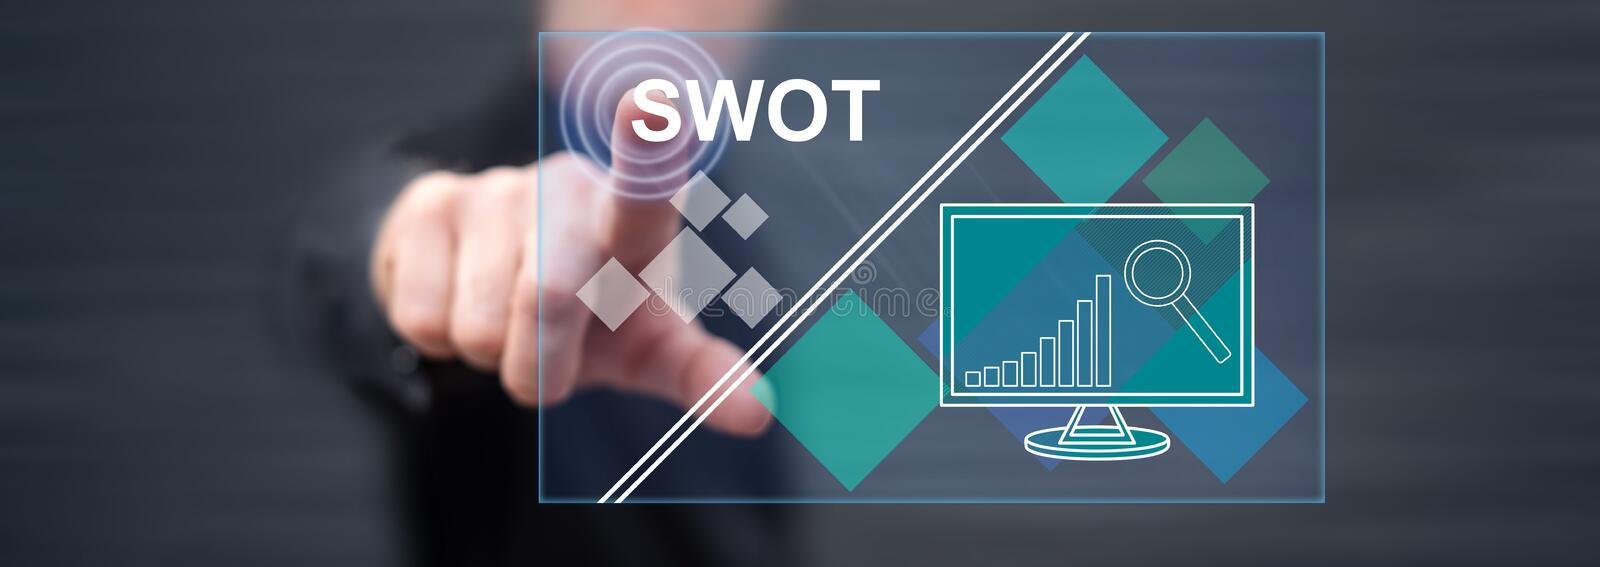 Man touching a swot concept stock image